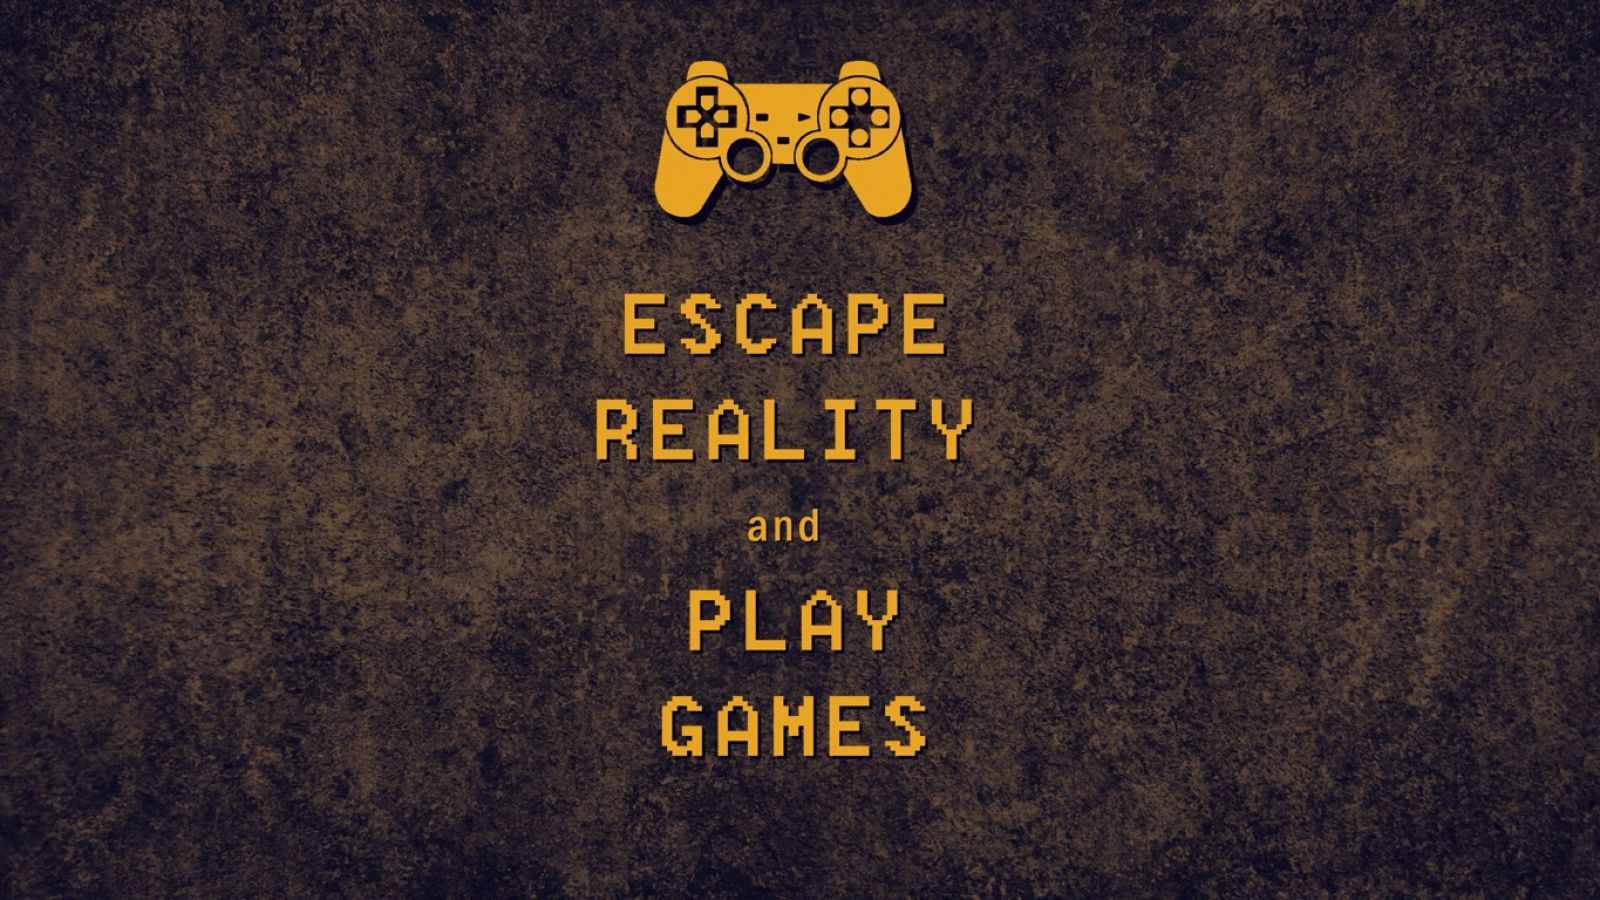 Gamer sayings   Google Search Nerdness Gamer quotes Game 1600x900